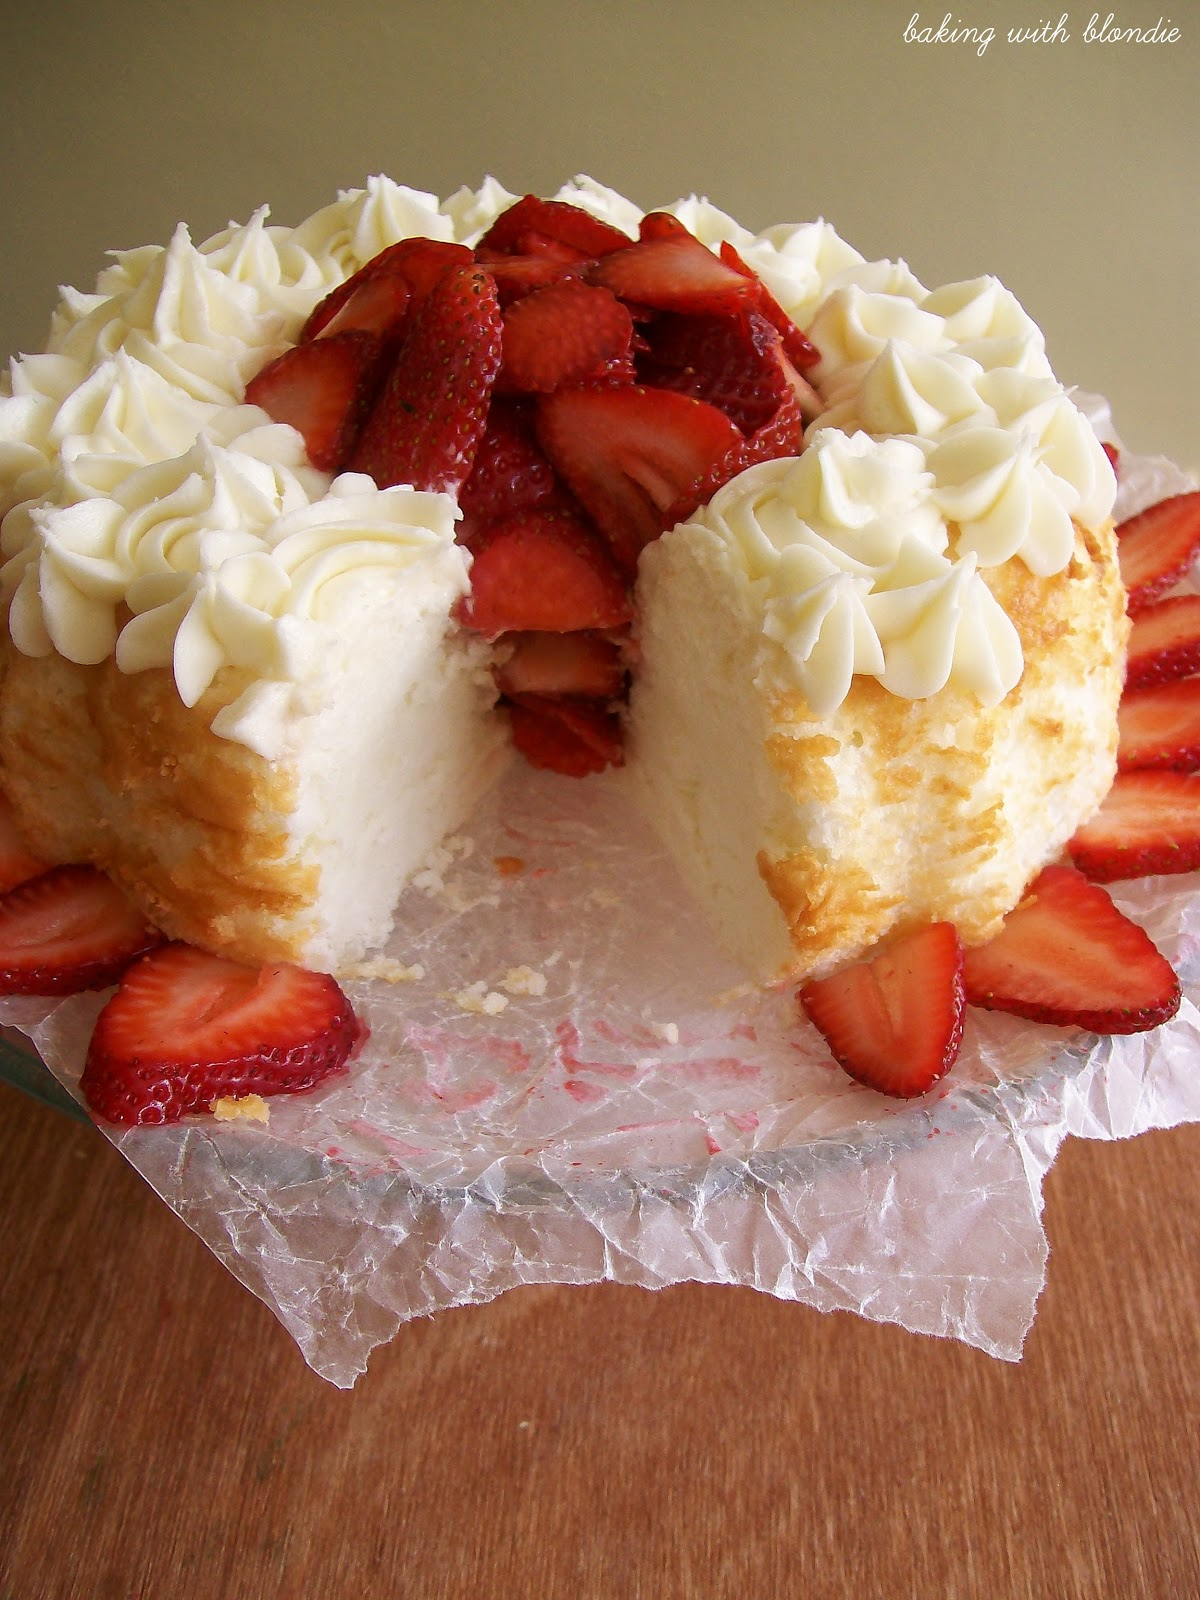 How Do You Make The Strawberries For Angel Food Cake